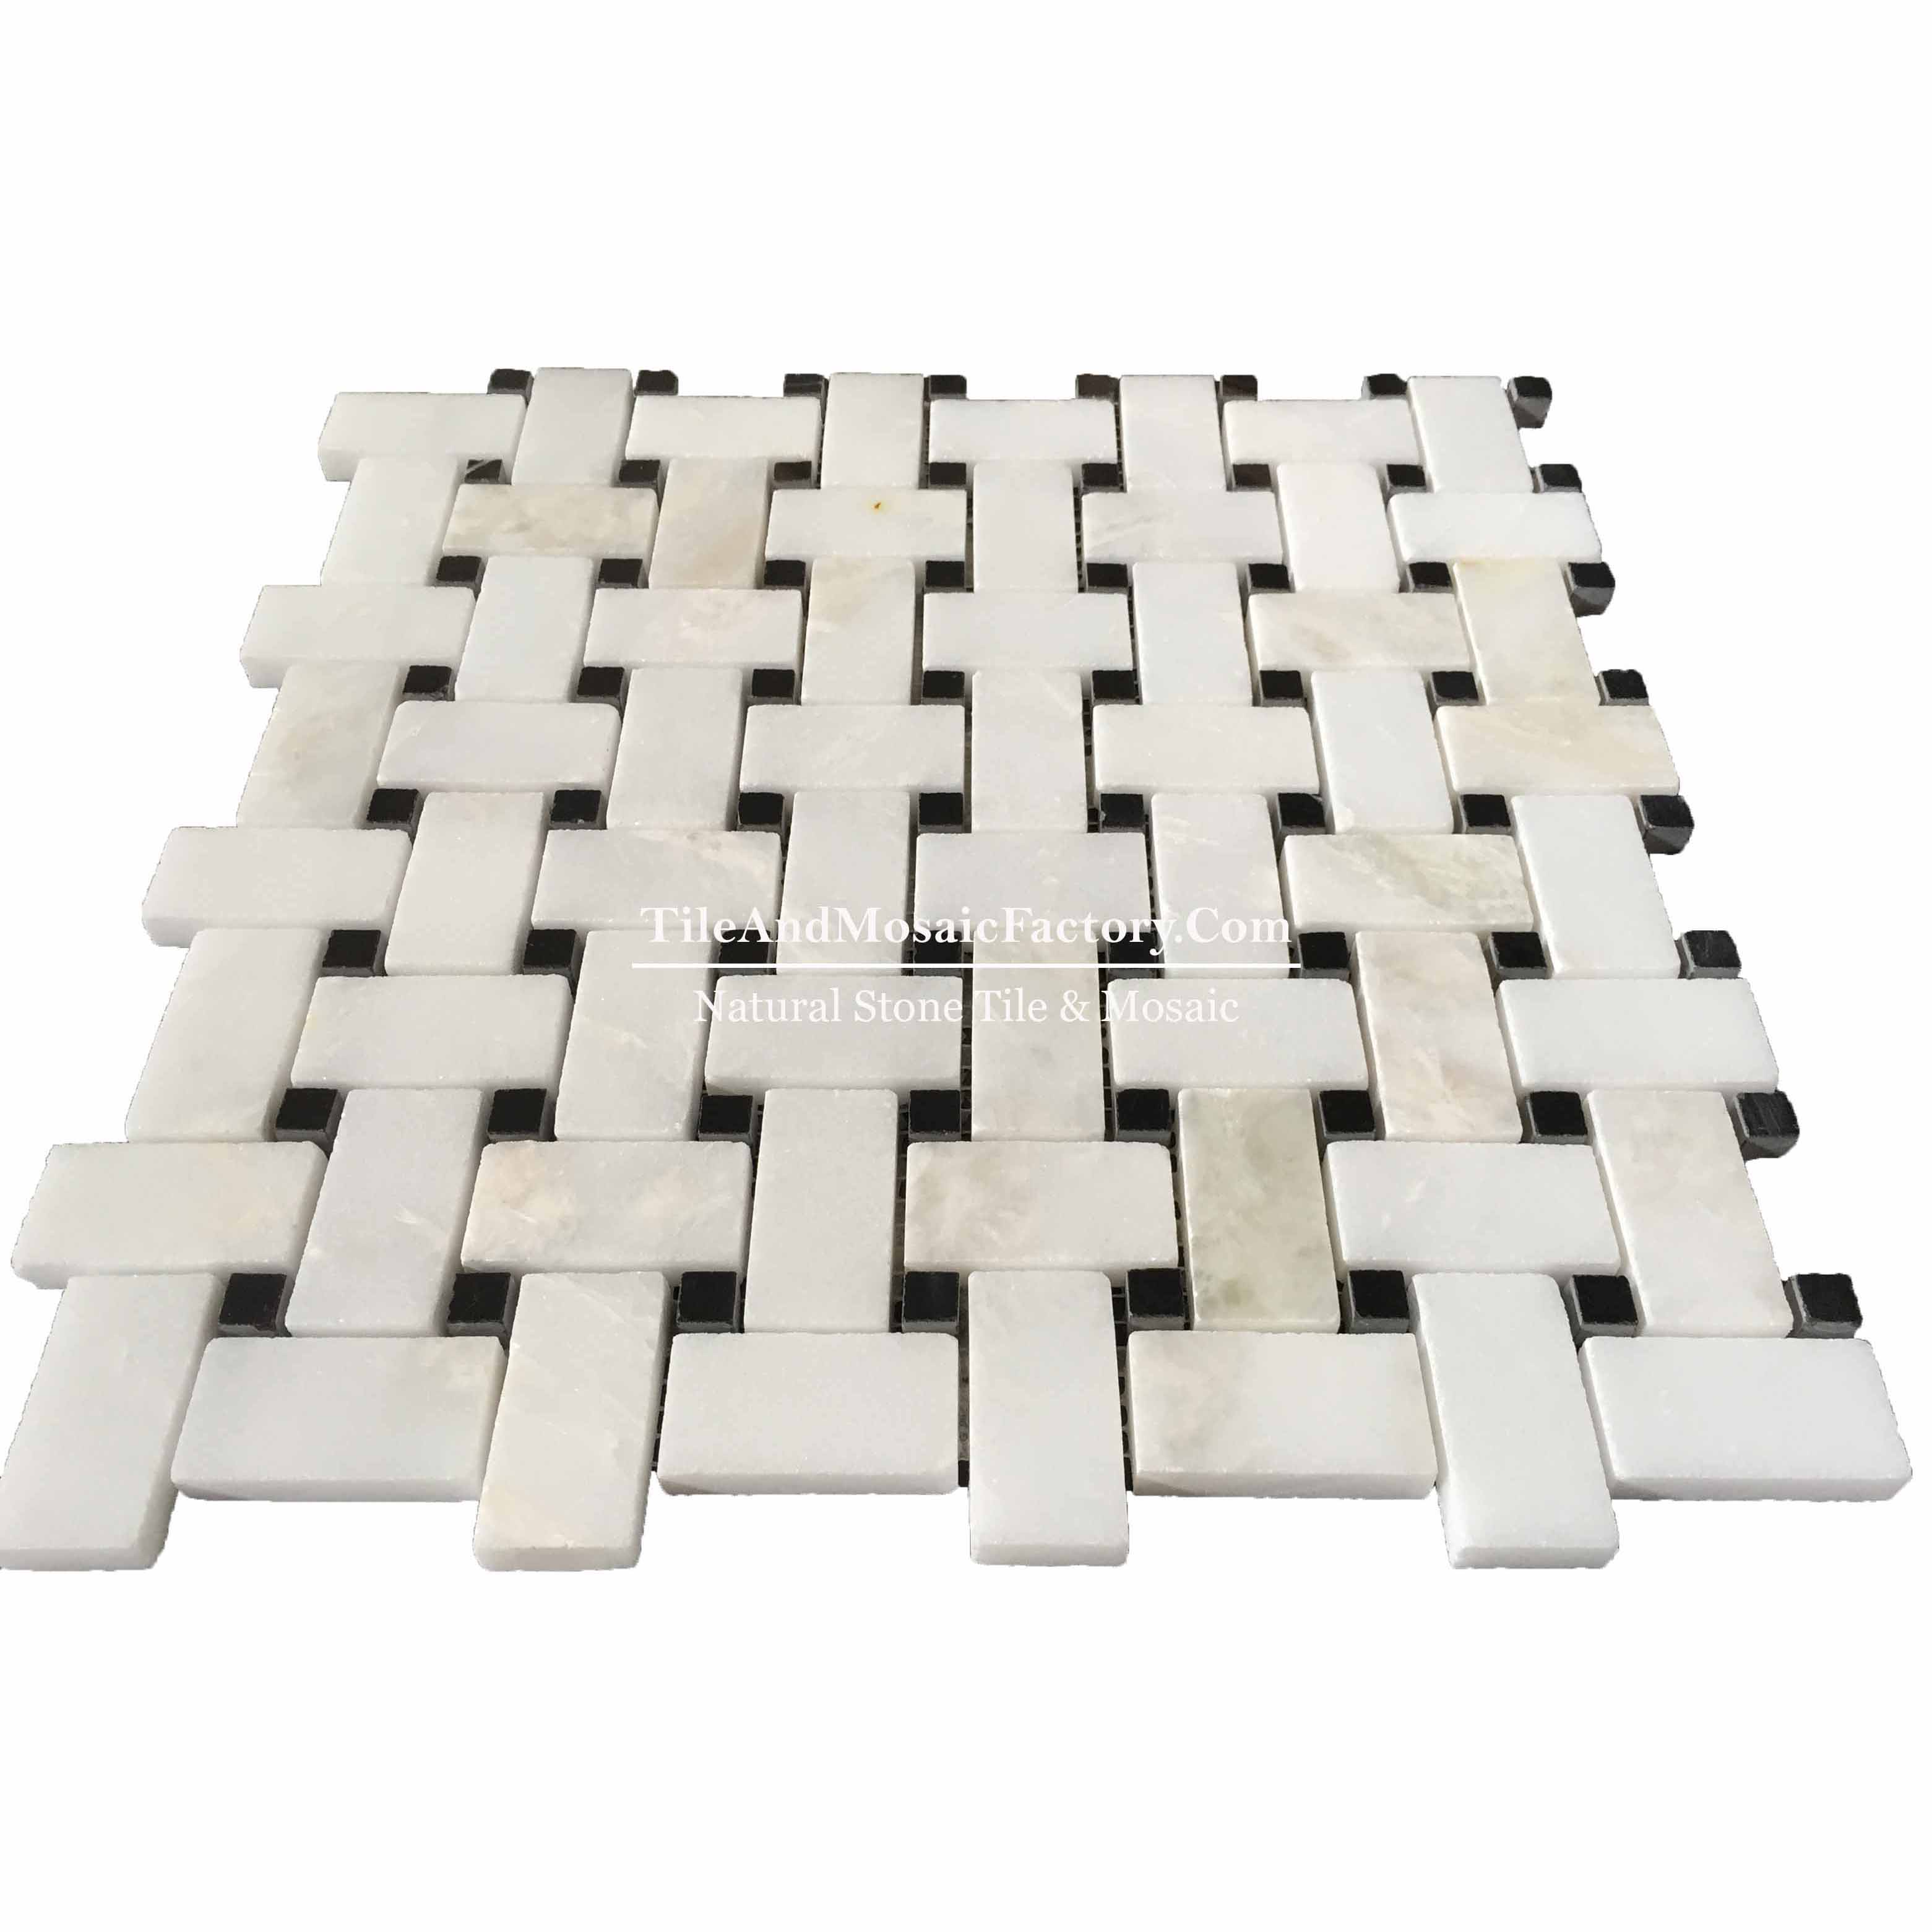 Rhino White Basketweave w/Black Dots polished White color Marble Mosaic